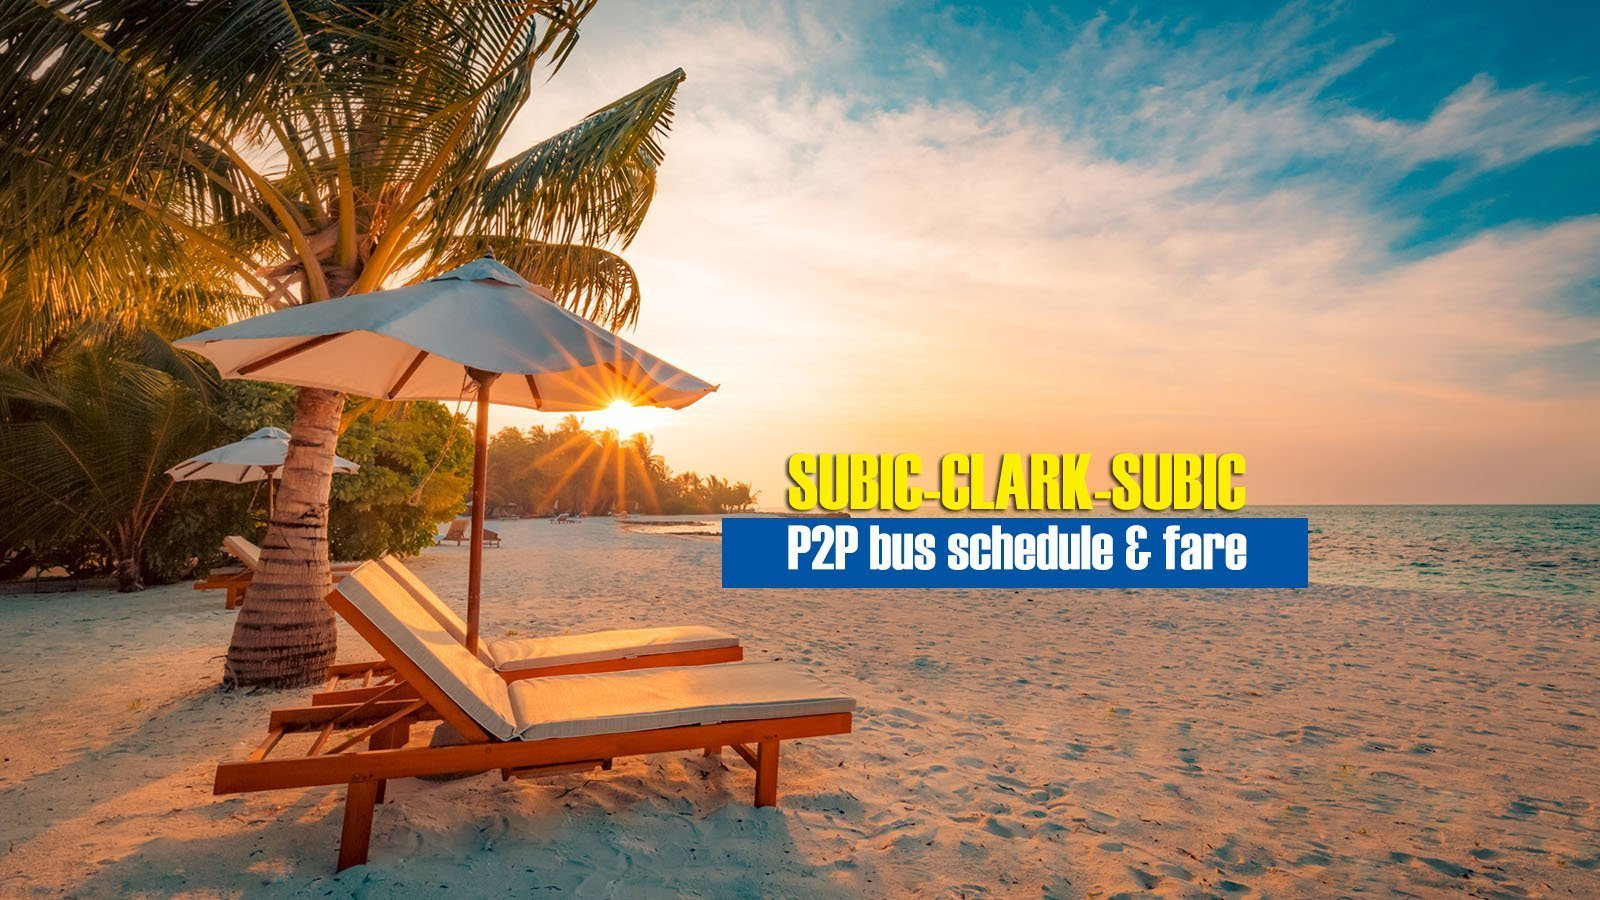 Subic to Clark Airport: 2020 P2P Bus Schedule